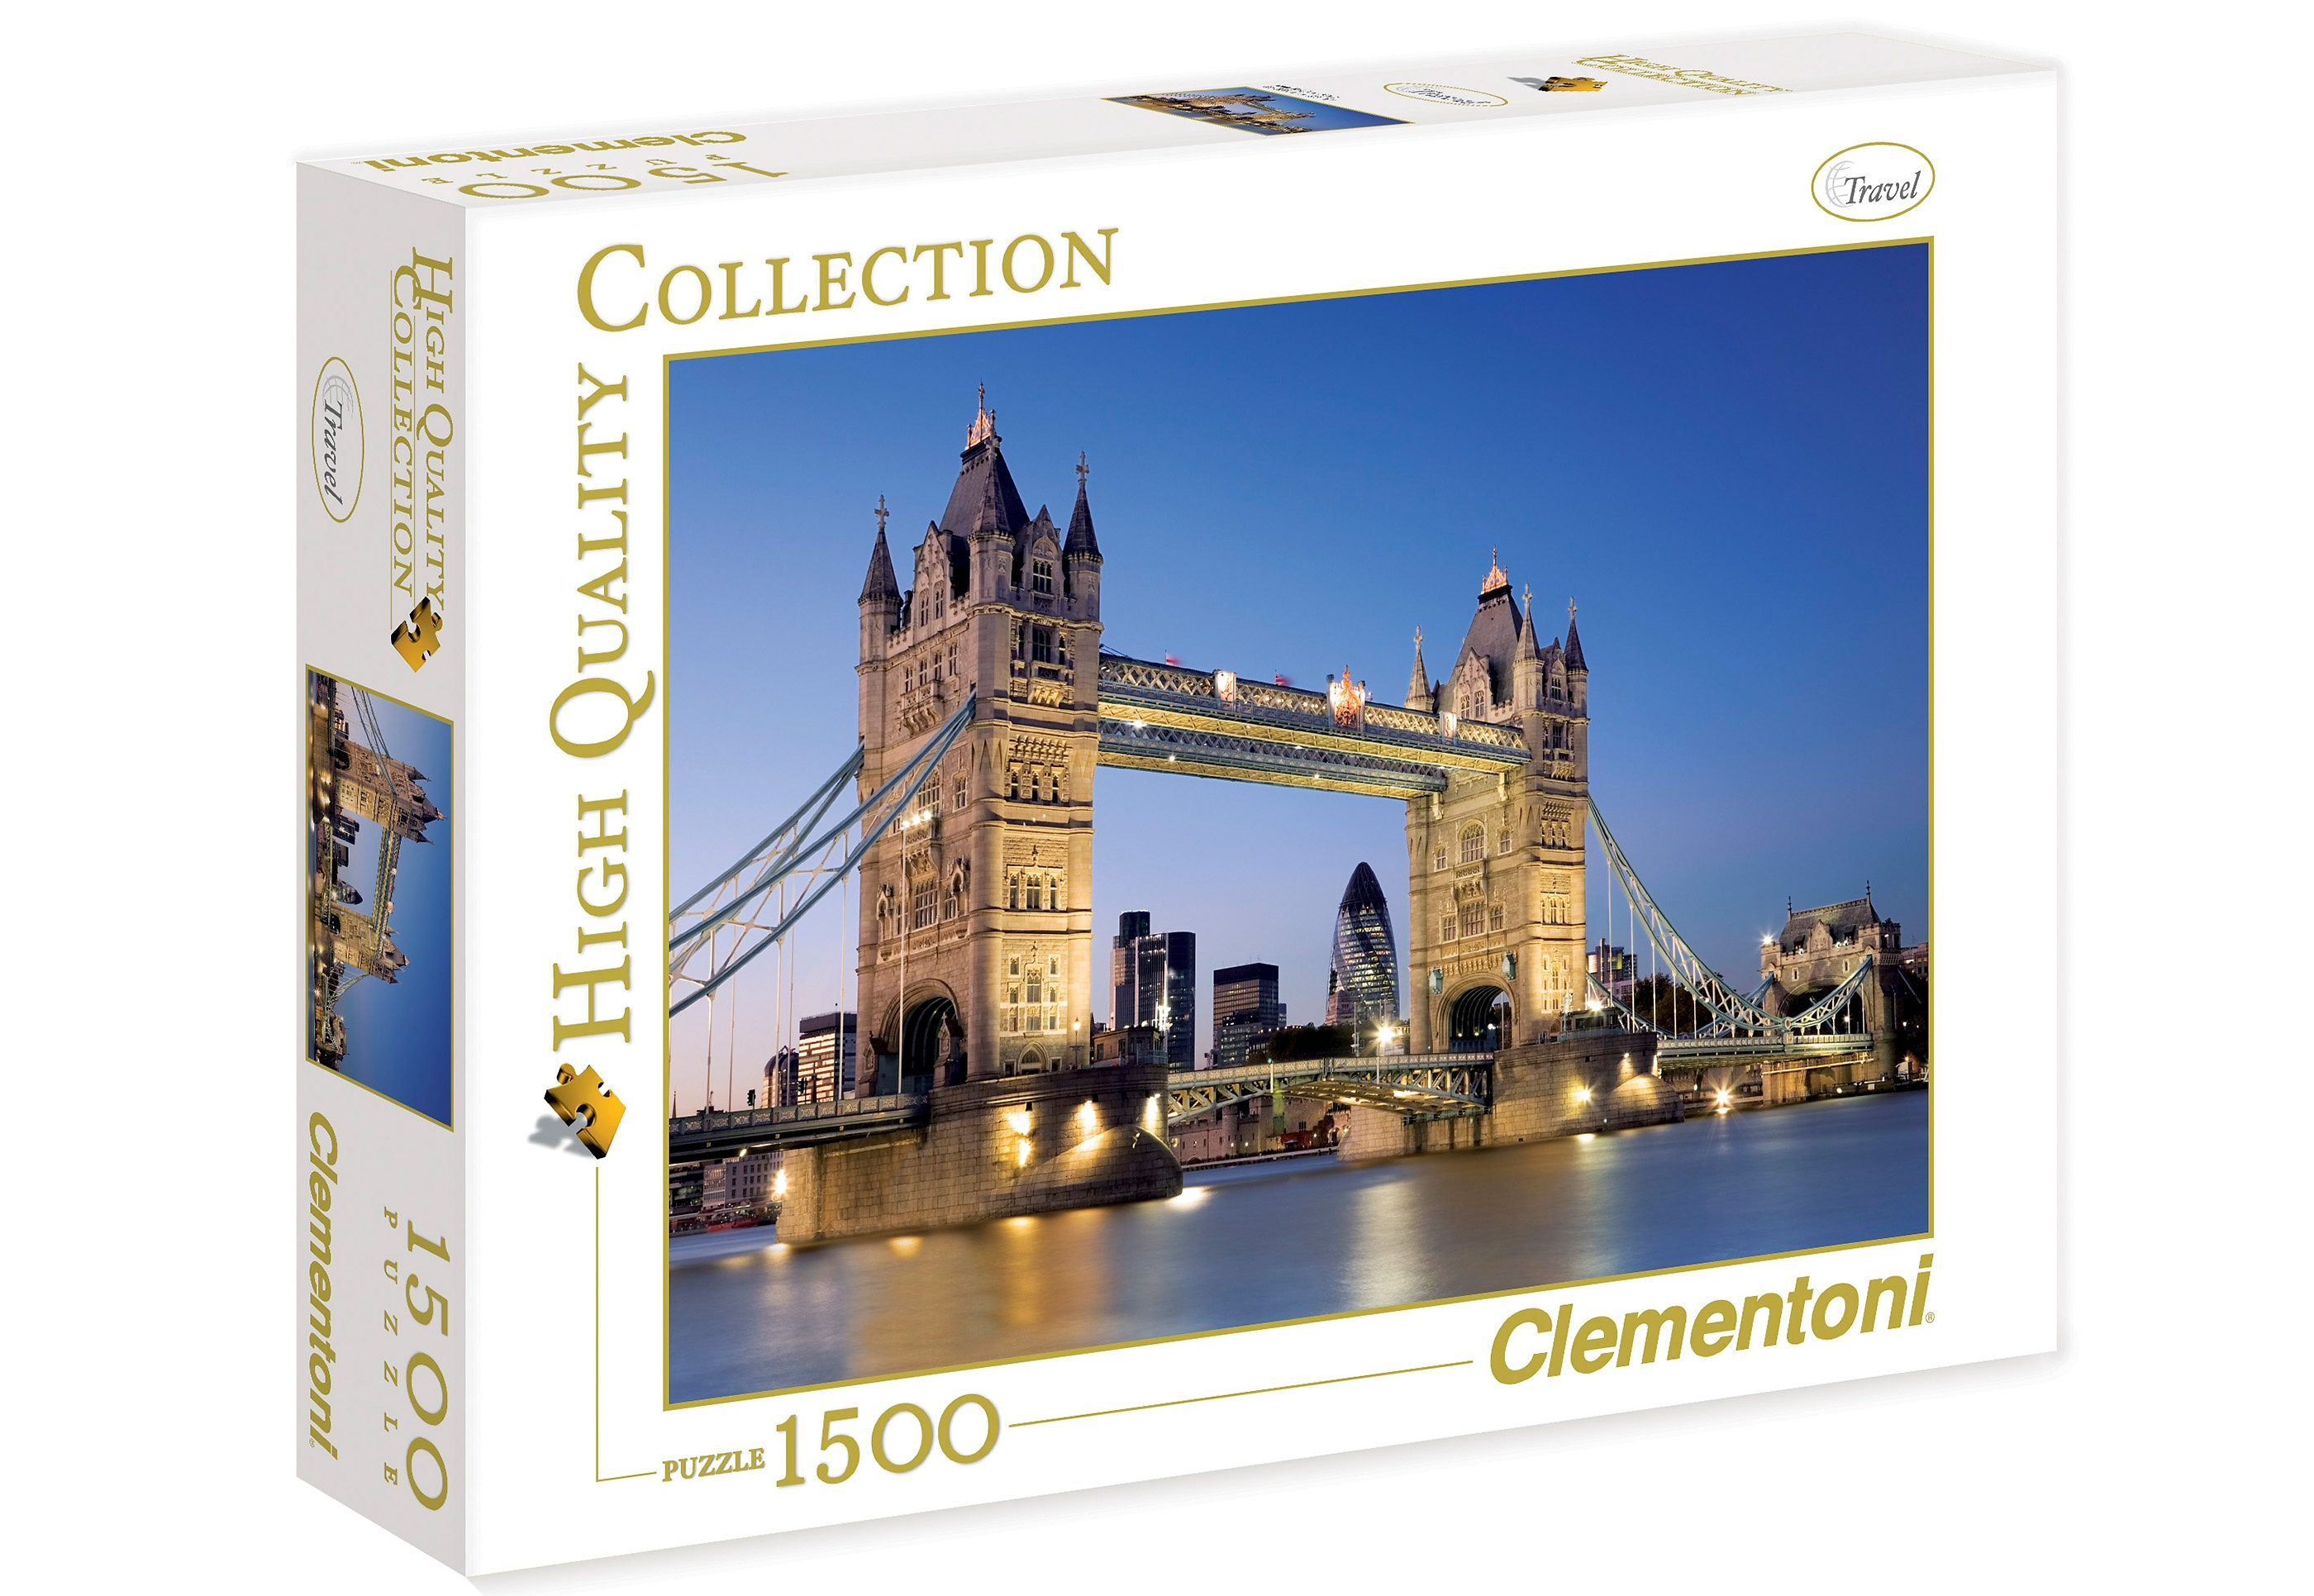 Clementoni Puzzle, 1500 Teile, »Tower Bridge«